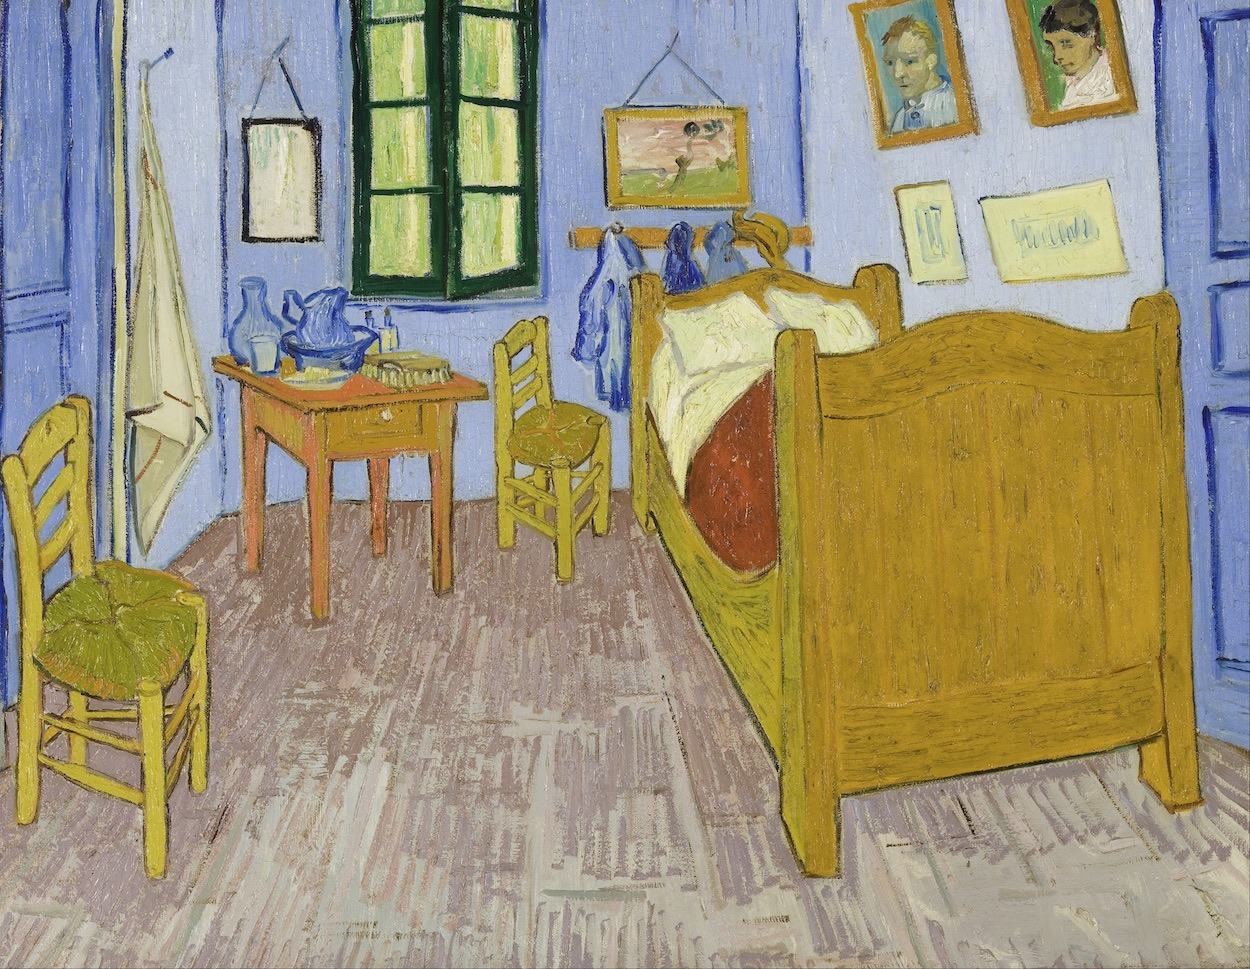 Bedroom in Arles - Van Gogh